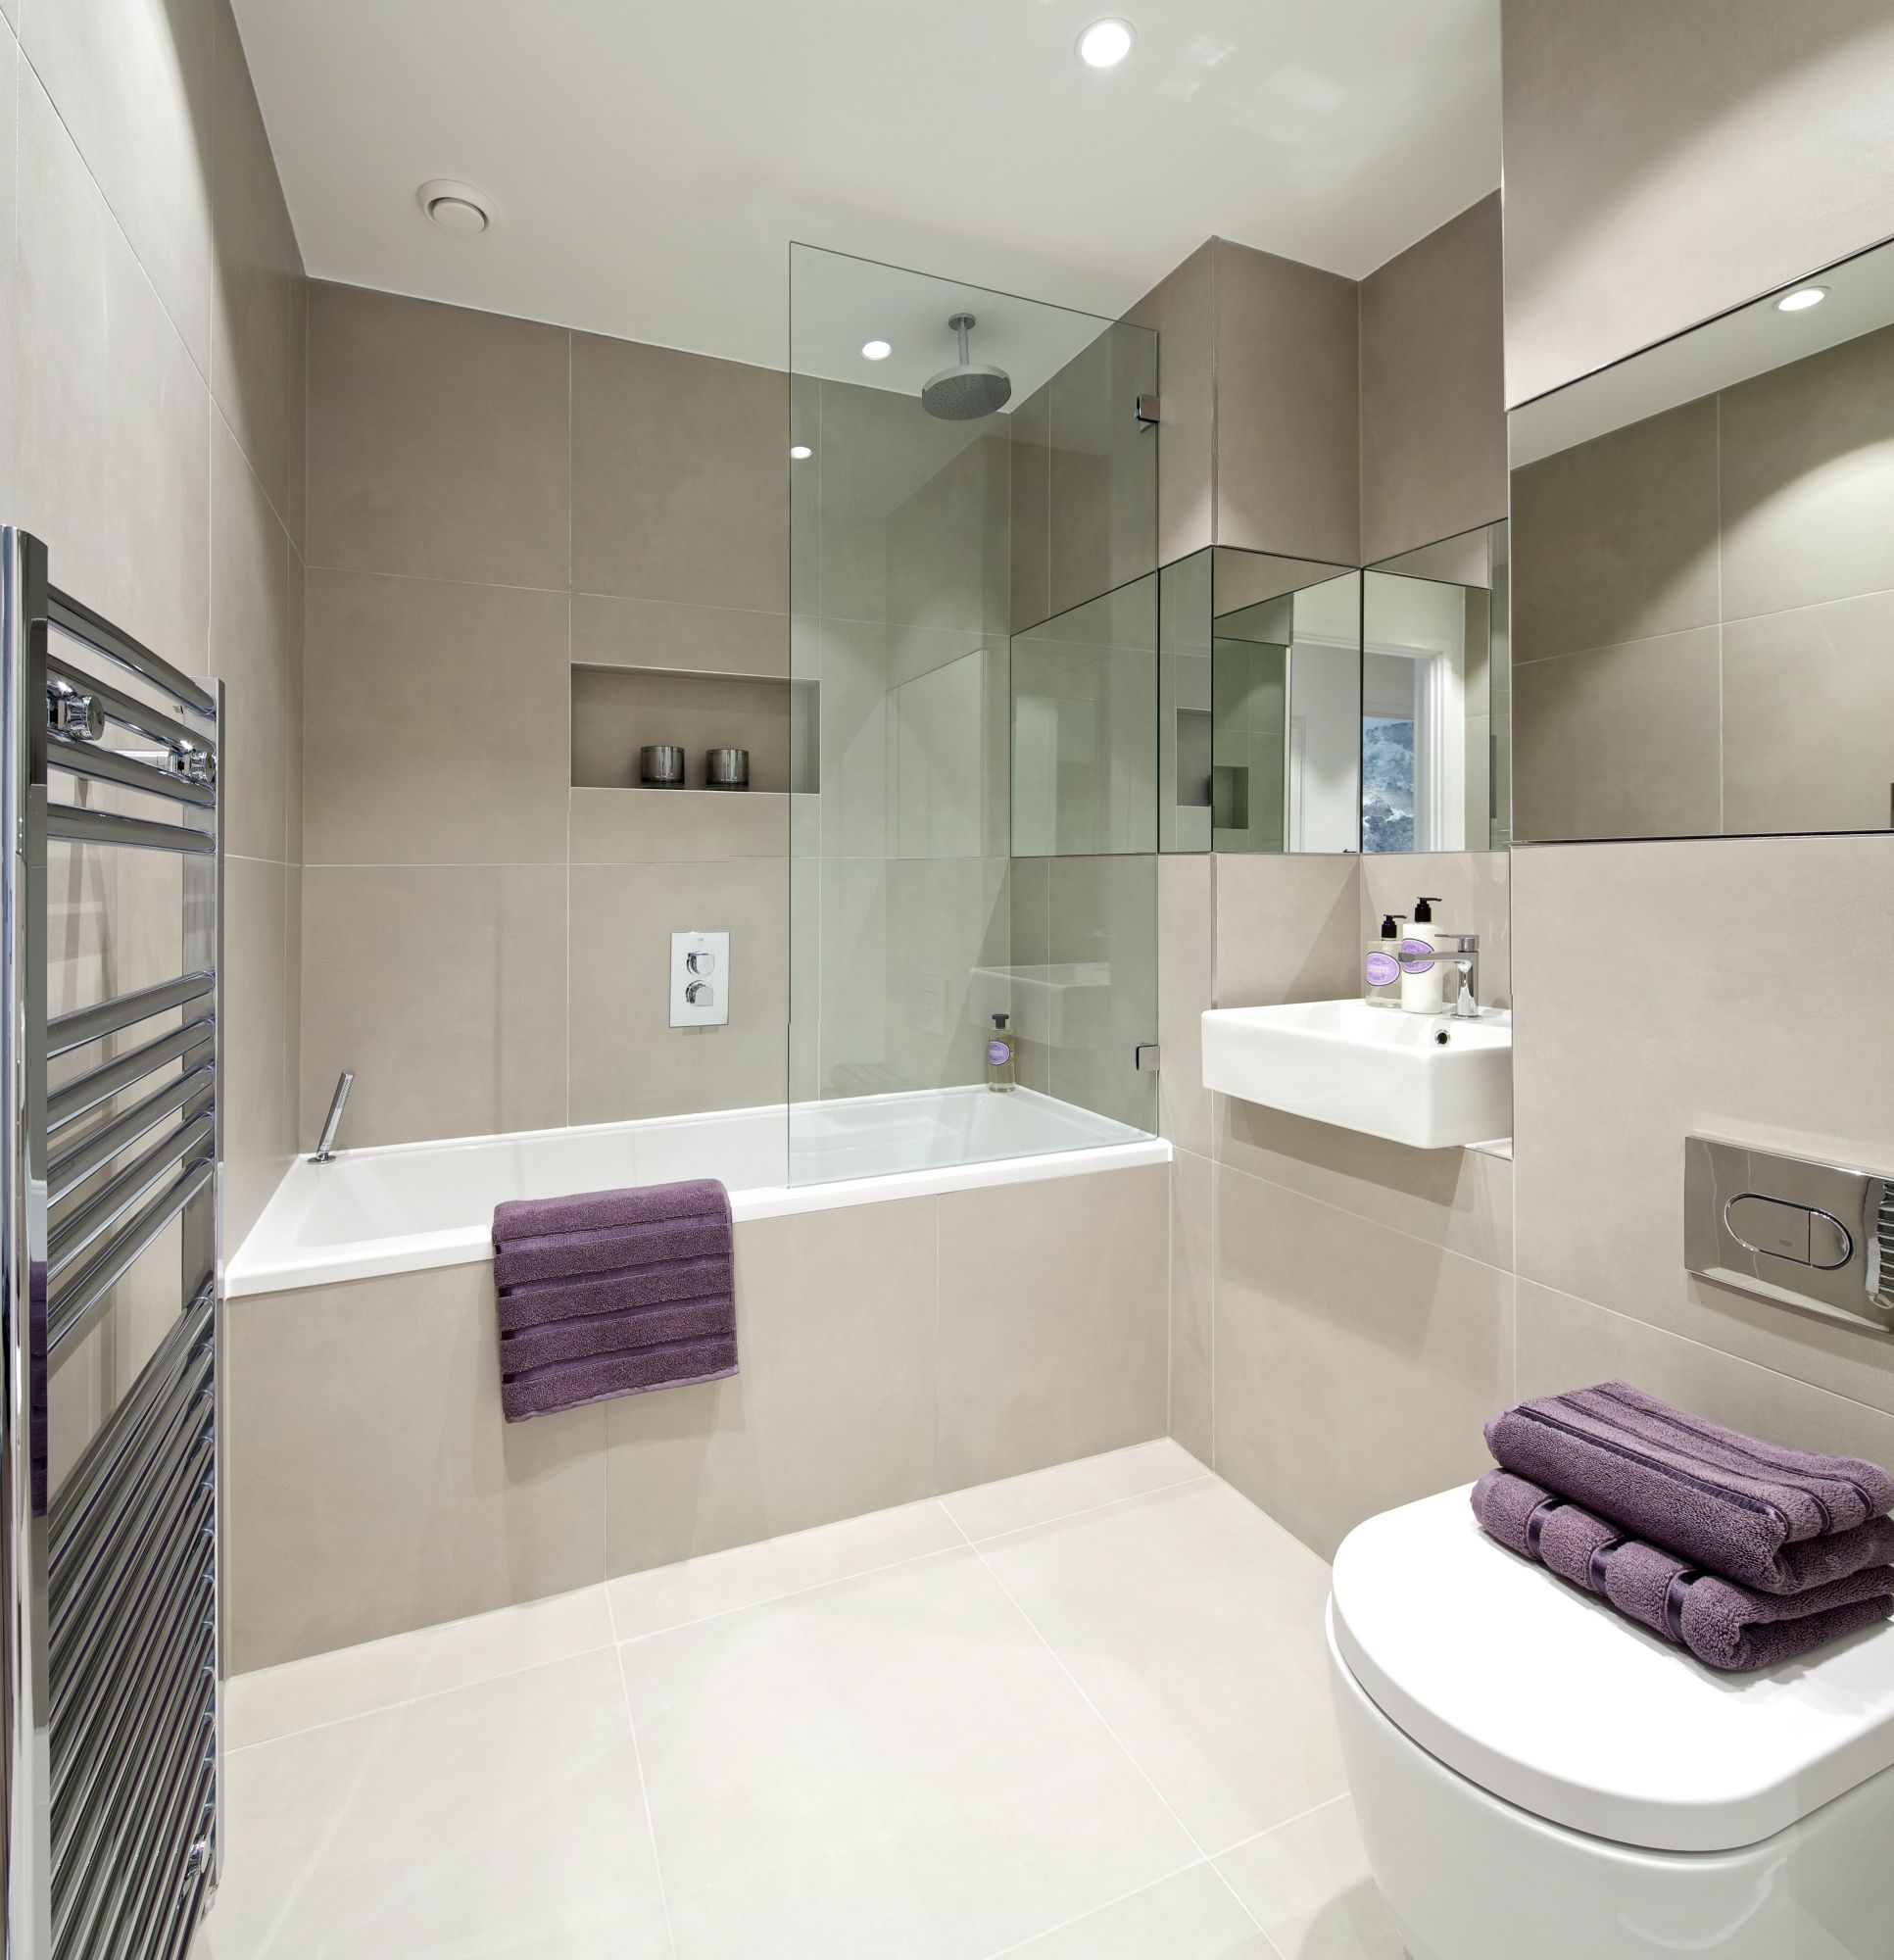 Modern Hotel Bathroom Design Ideas: Bathroom : Another Stunning Show